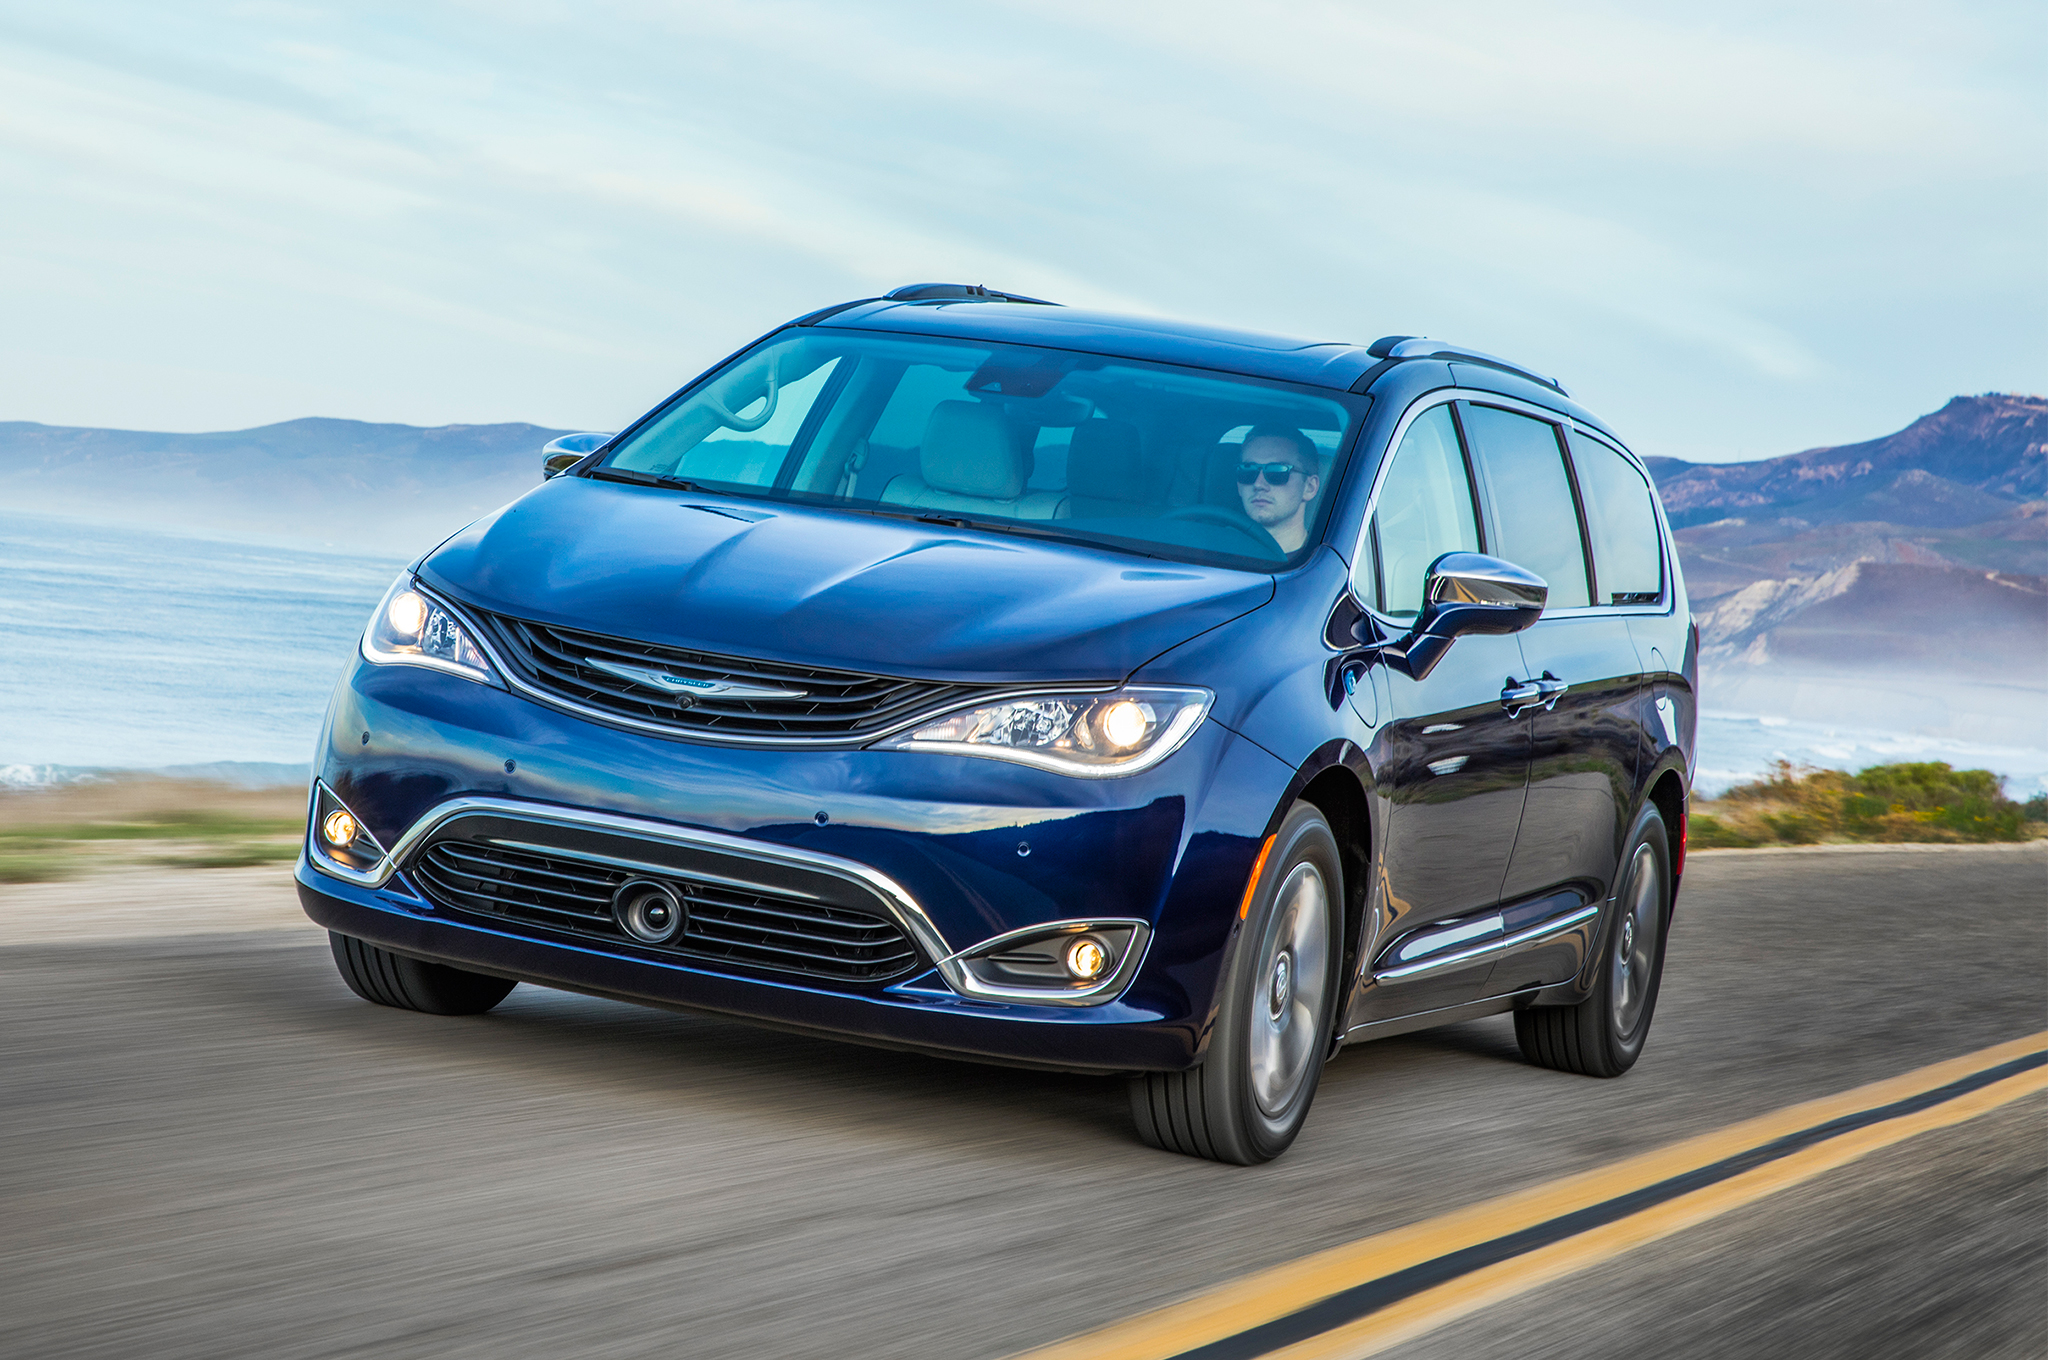 2017 chrysler pacifica hybrid first drive automobile magazine. Black Bedroom Furniture Sets. Home Design Ideas